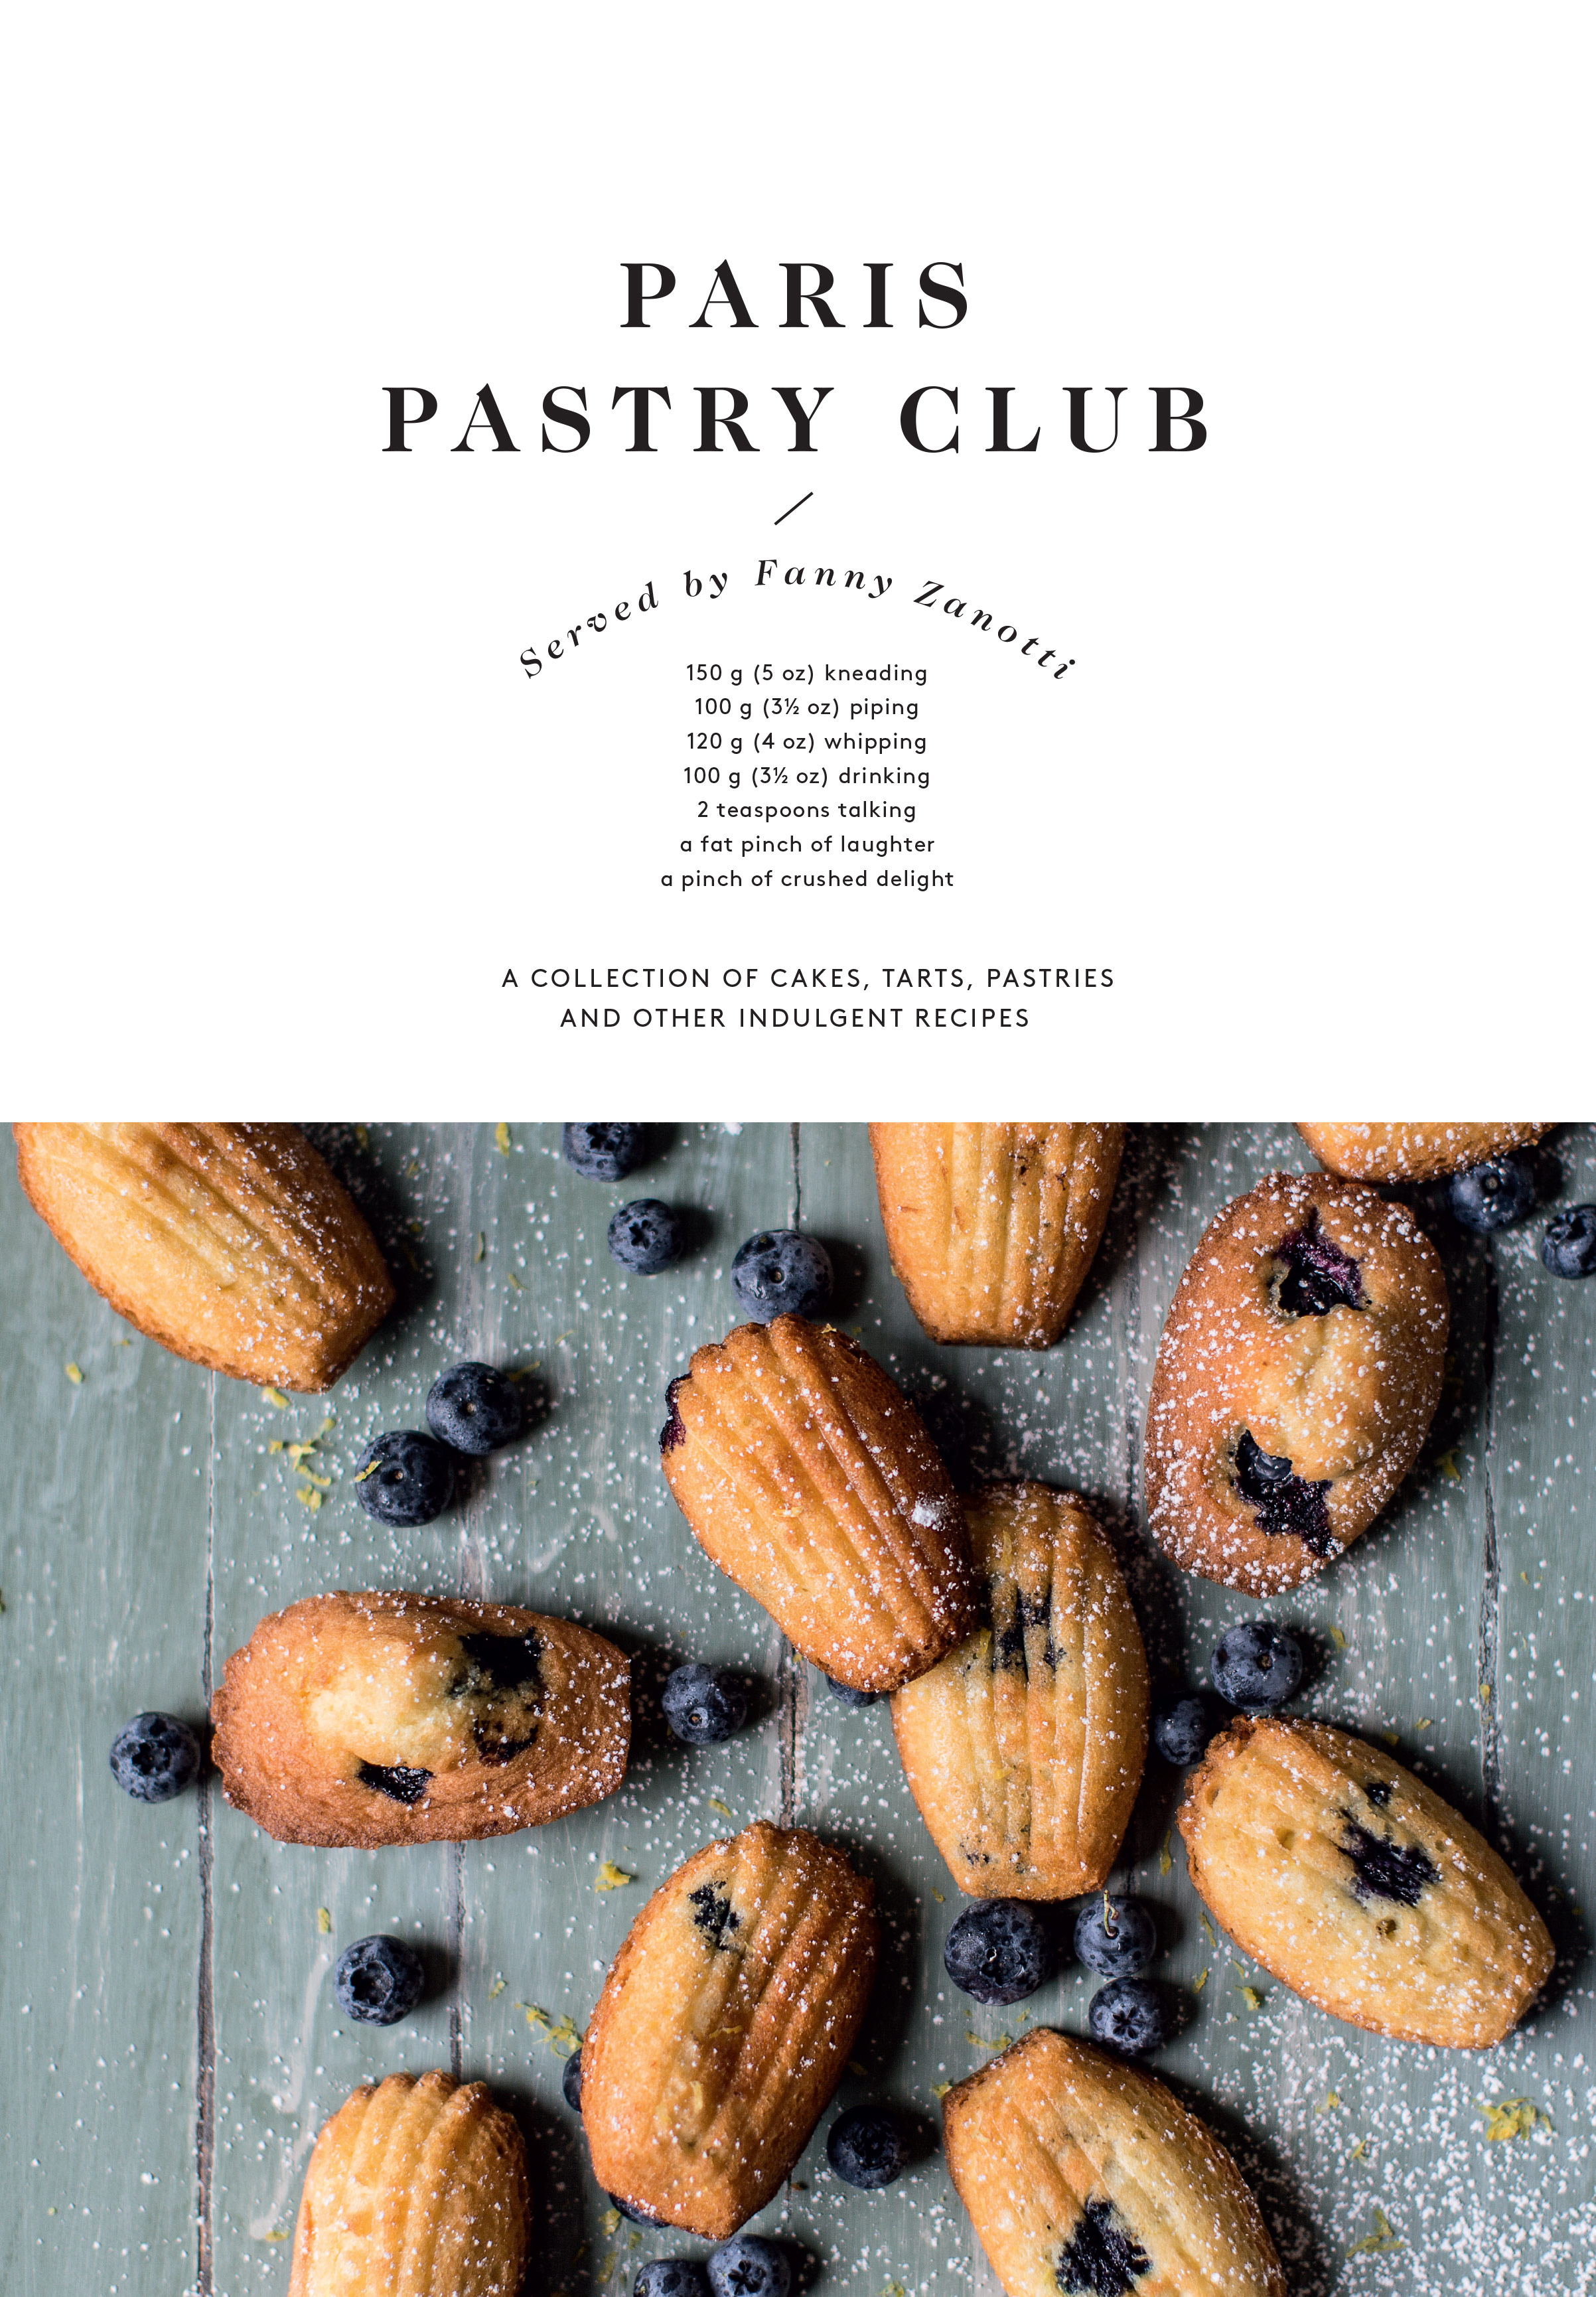 Paris Pastry Club